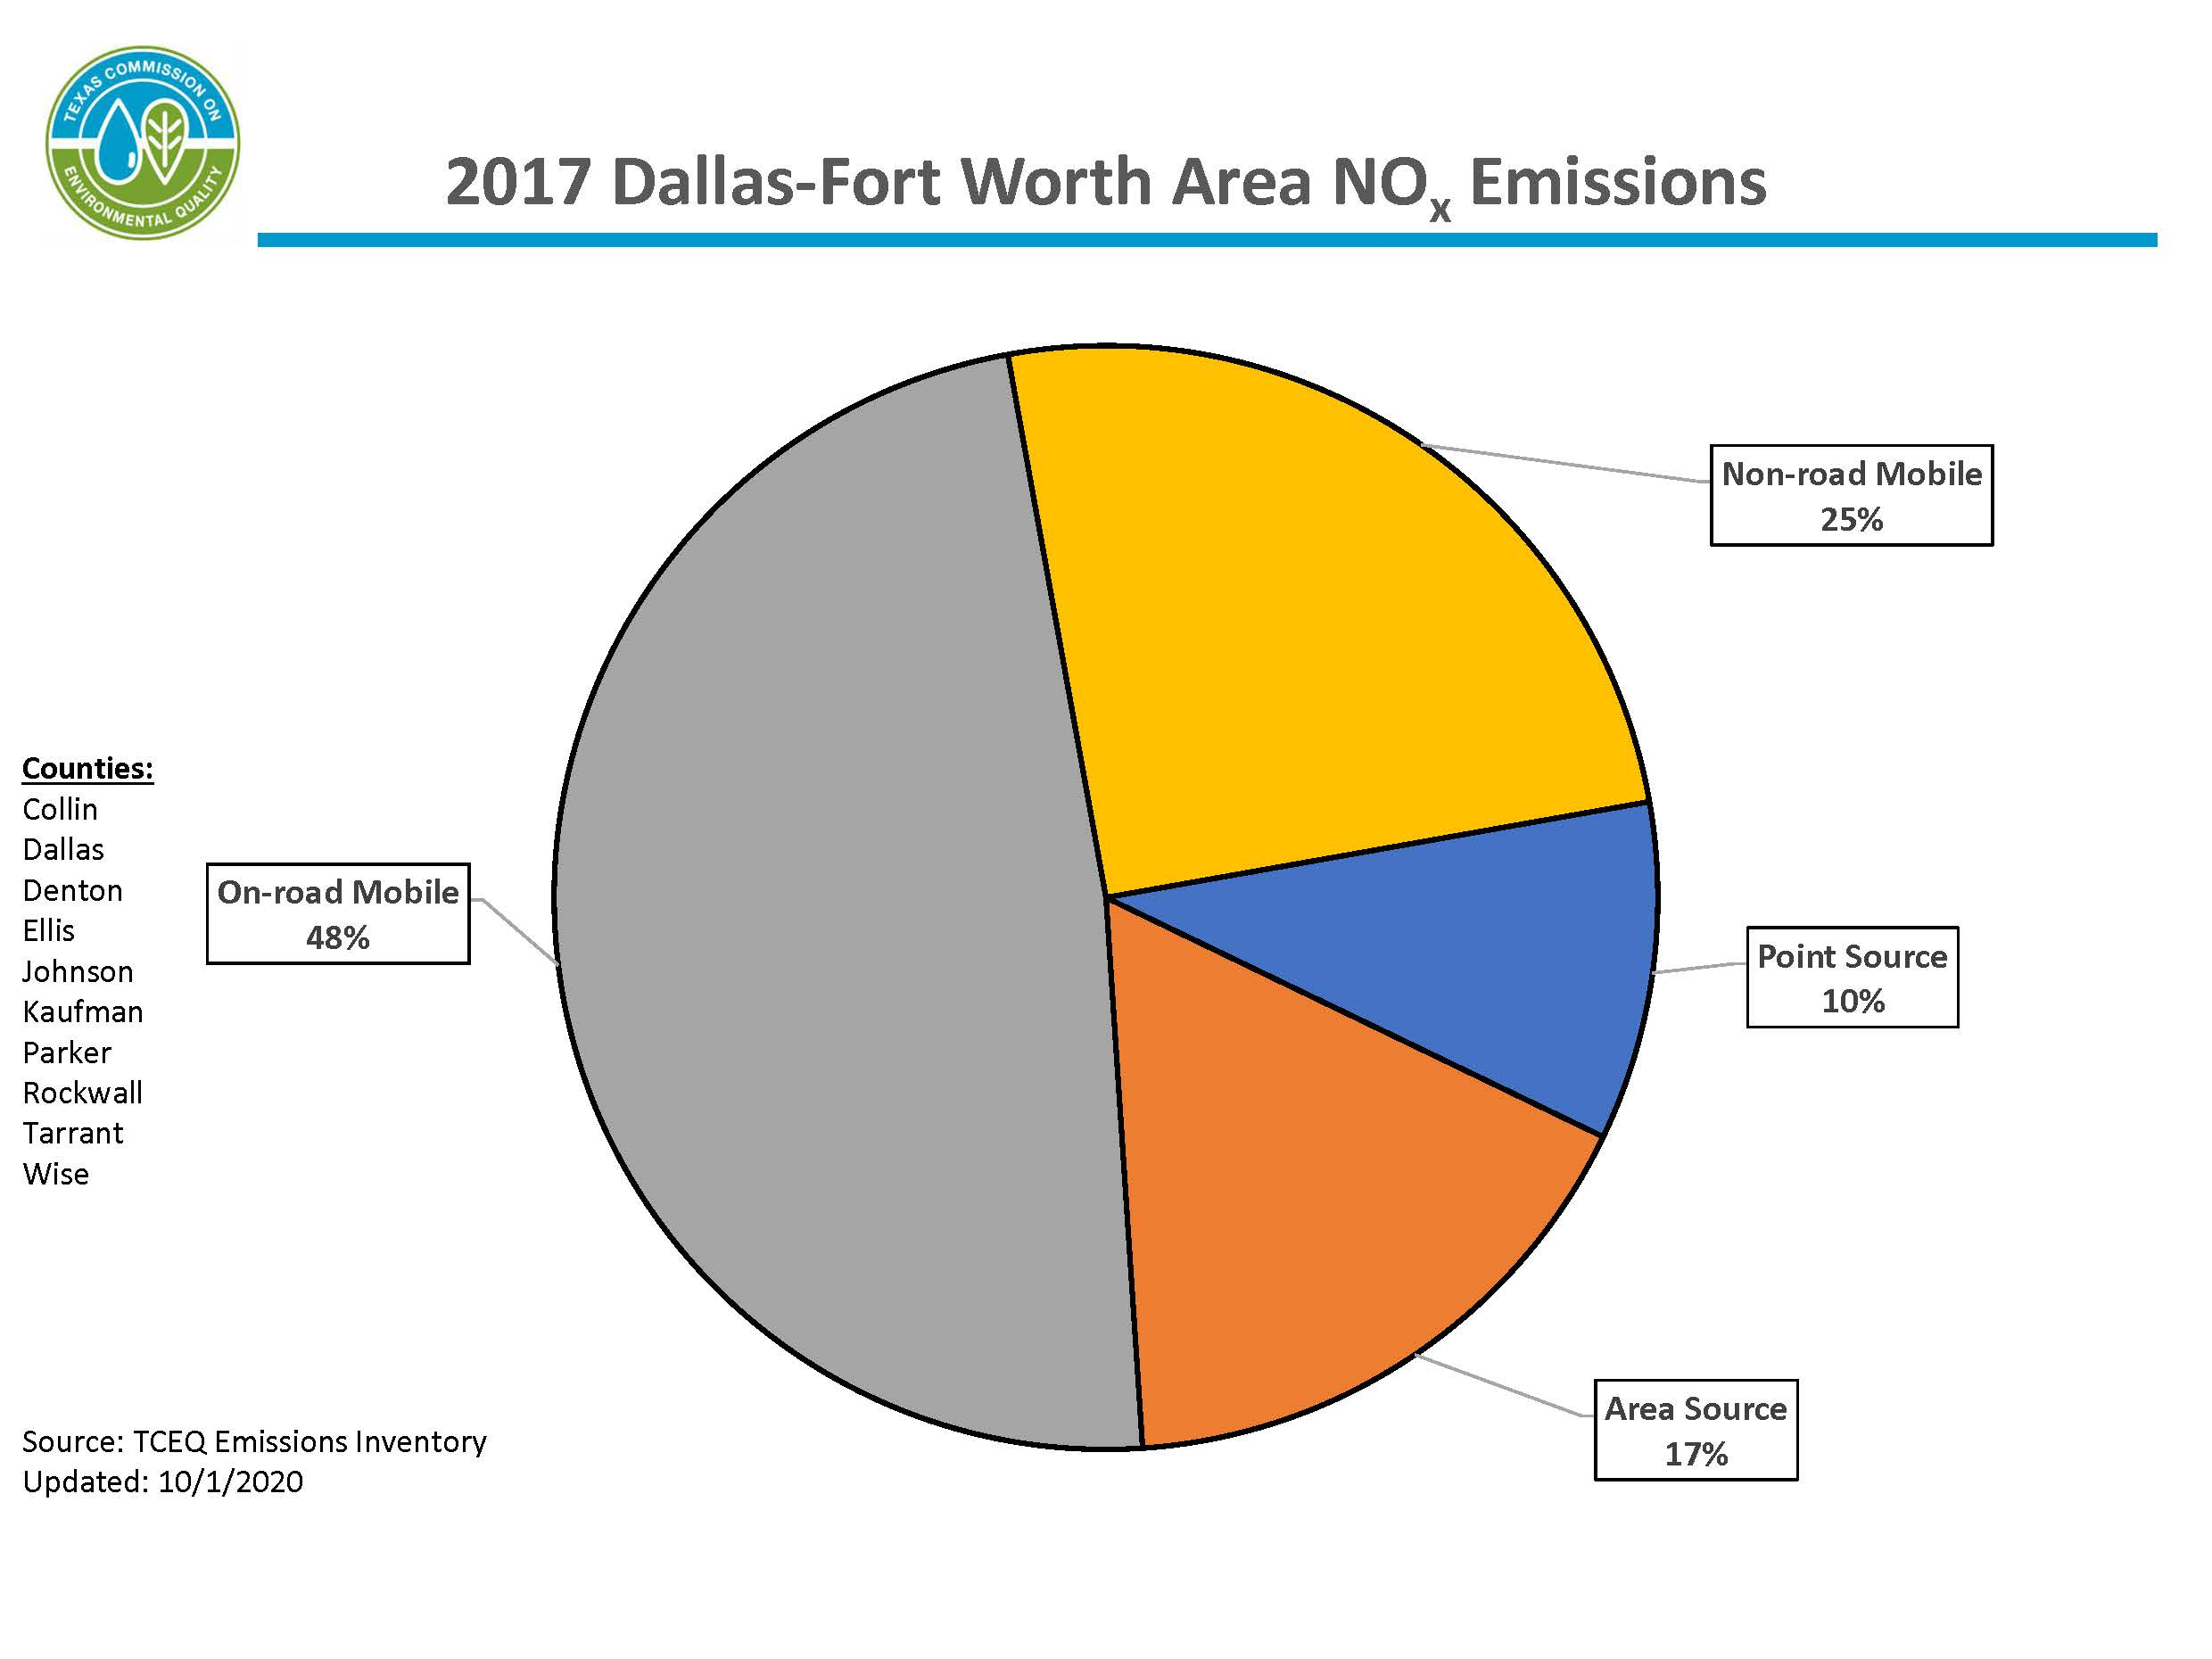 This chart represents calendar year 2017 nitrogen oxide emissions for the 10-county Dallas-Fort Worth area. The DFW area includes Collin, Dallas, Denton, Ellis, Johnson, Kaufman, Parker, Rockwall, Tarrant, and Wise counties. 75 percent of emissions are from mobile sources, 16 percent of emissions are from area sources, and 9 percent of emissions are from point sources.